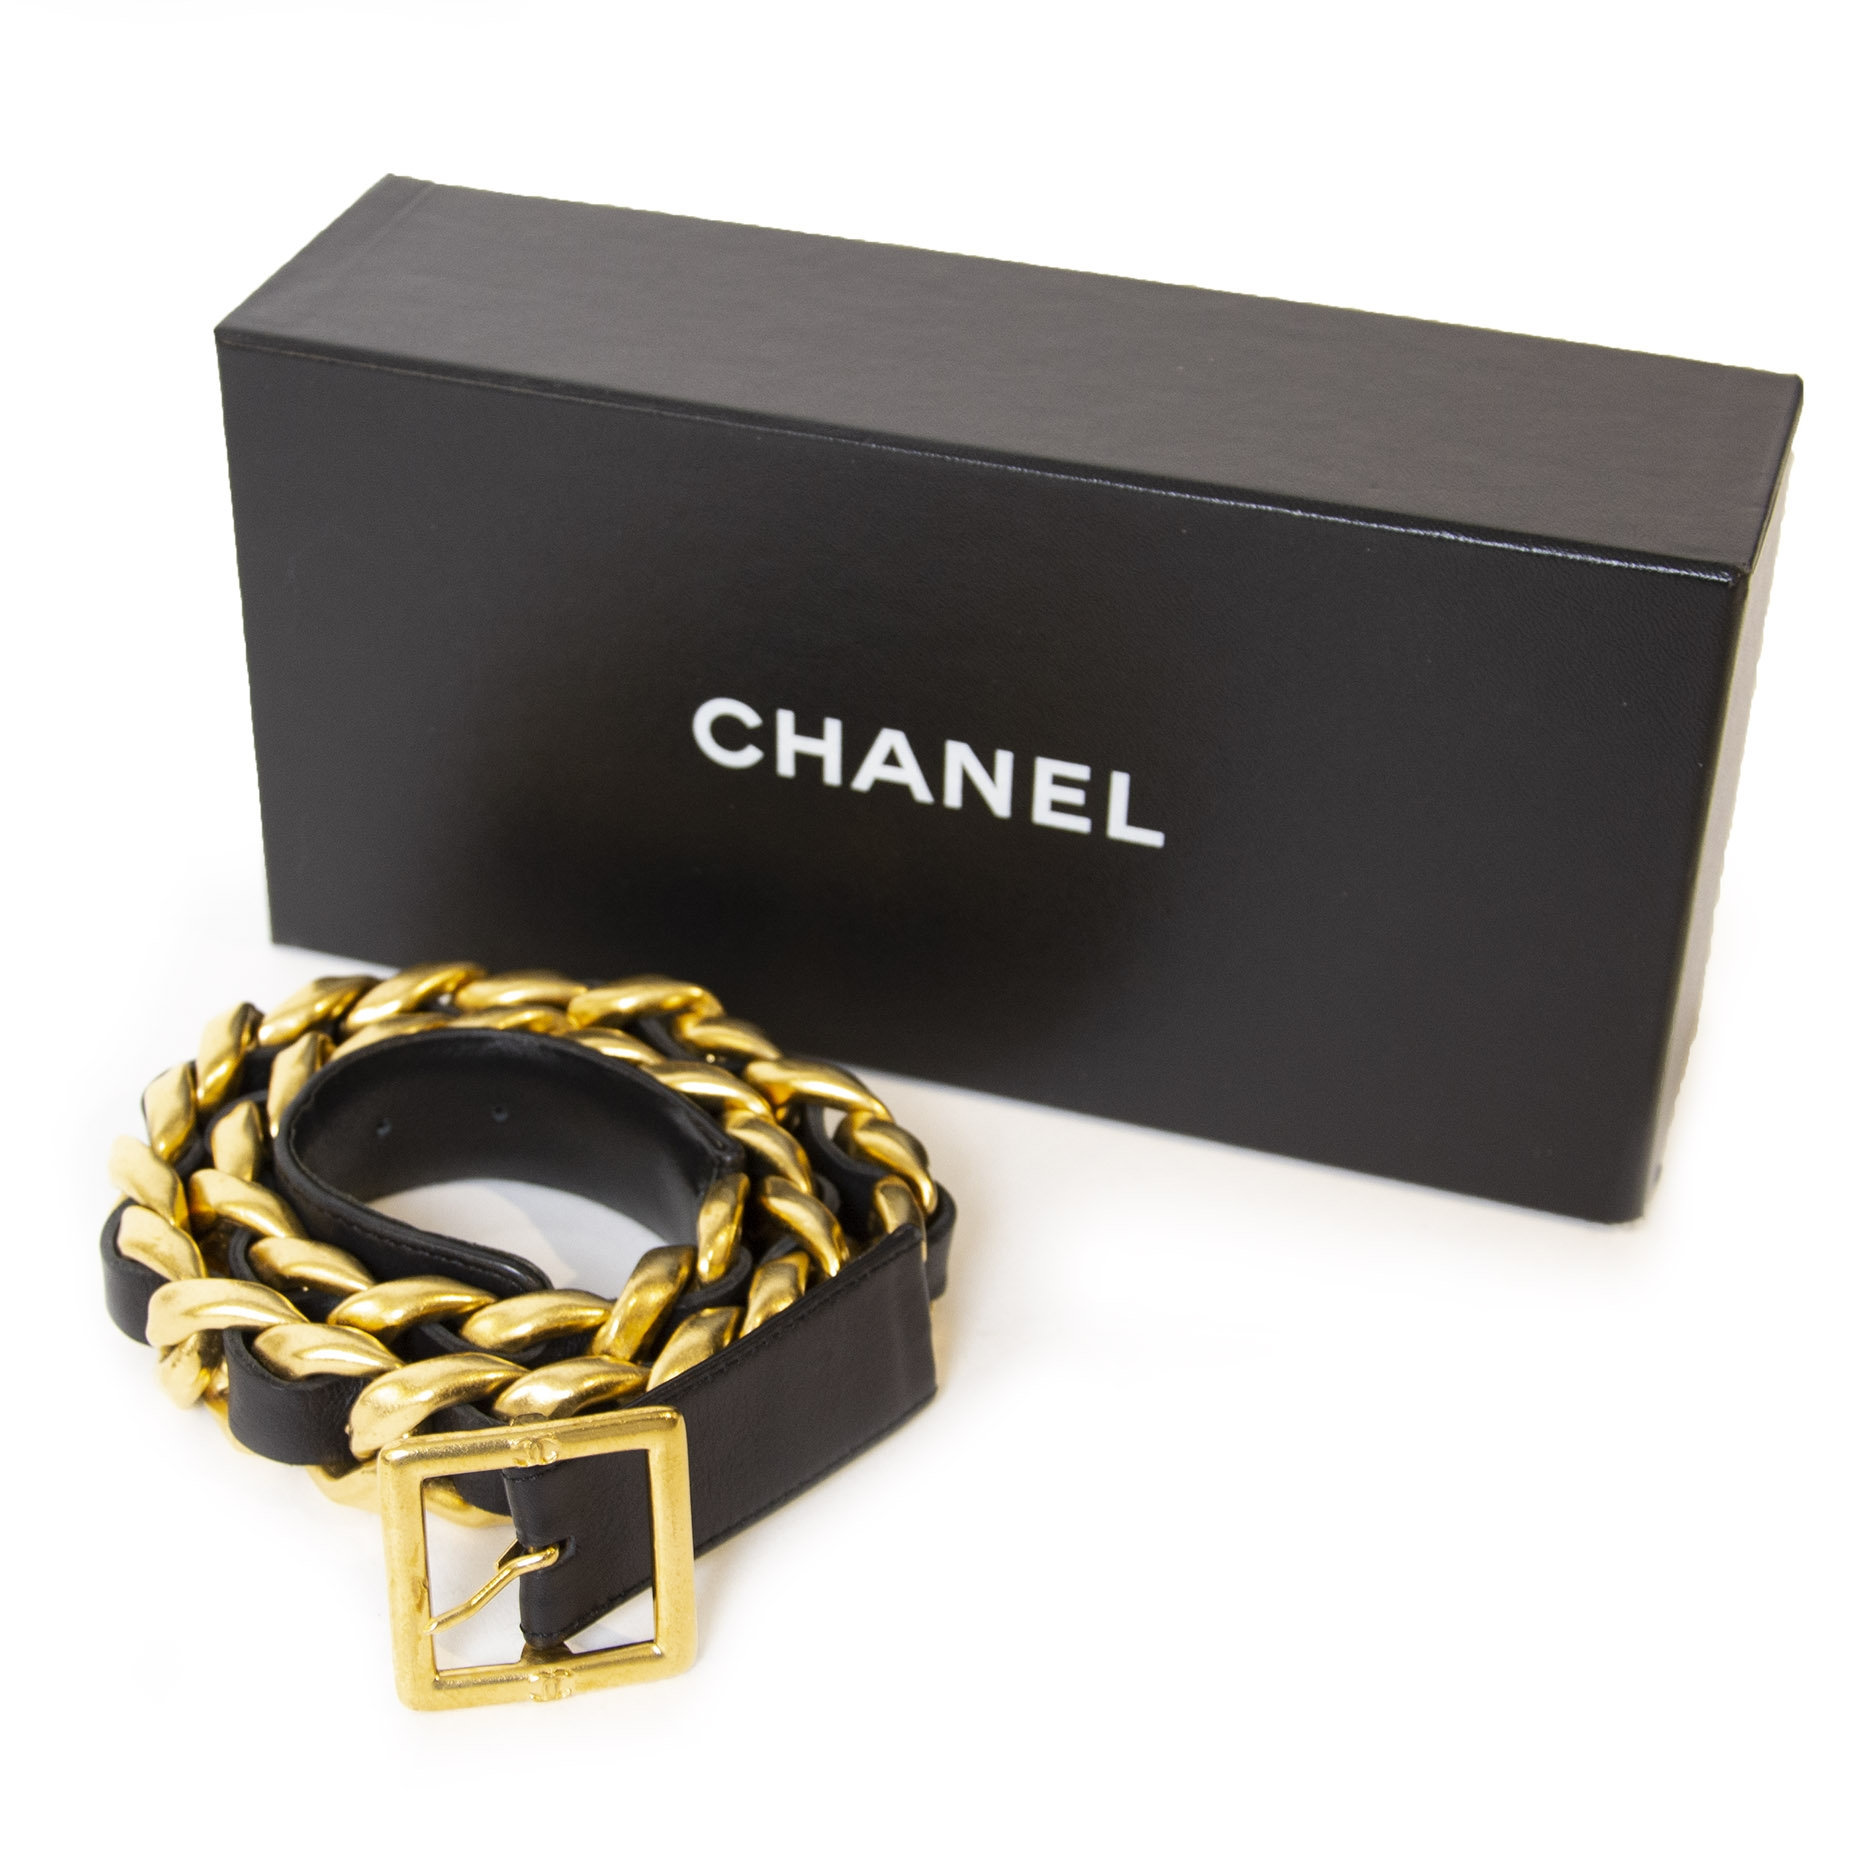 Chanel Black & Gold Heavy Belt  100% authentic for the best price at Labellov secondhand luxury